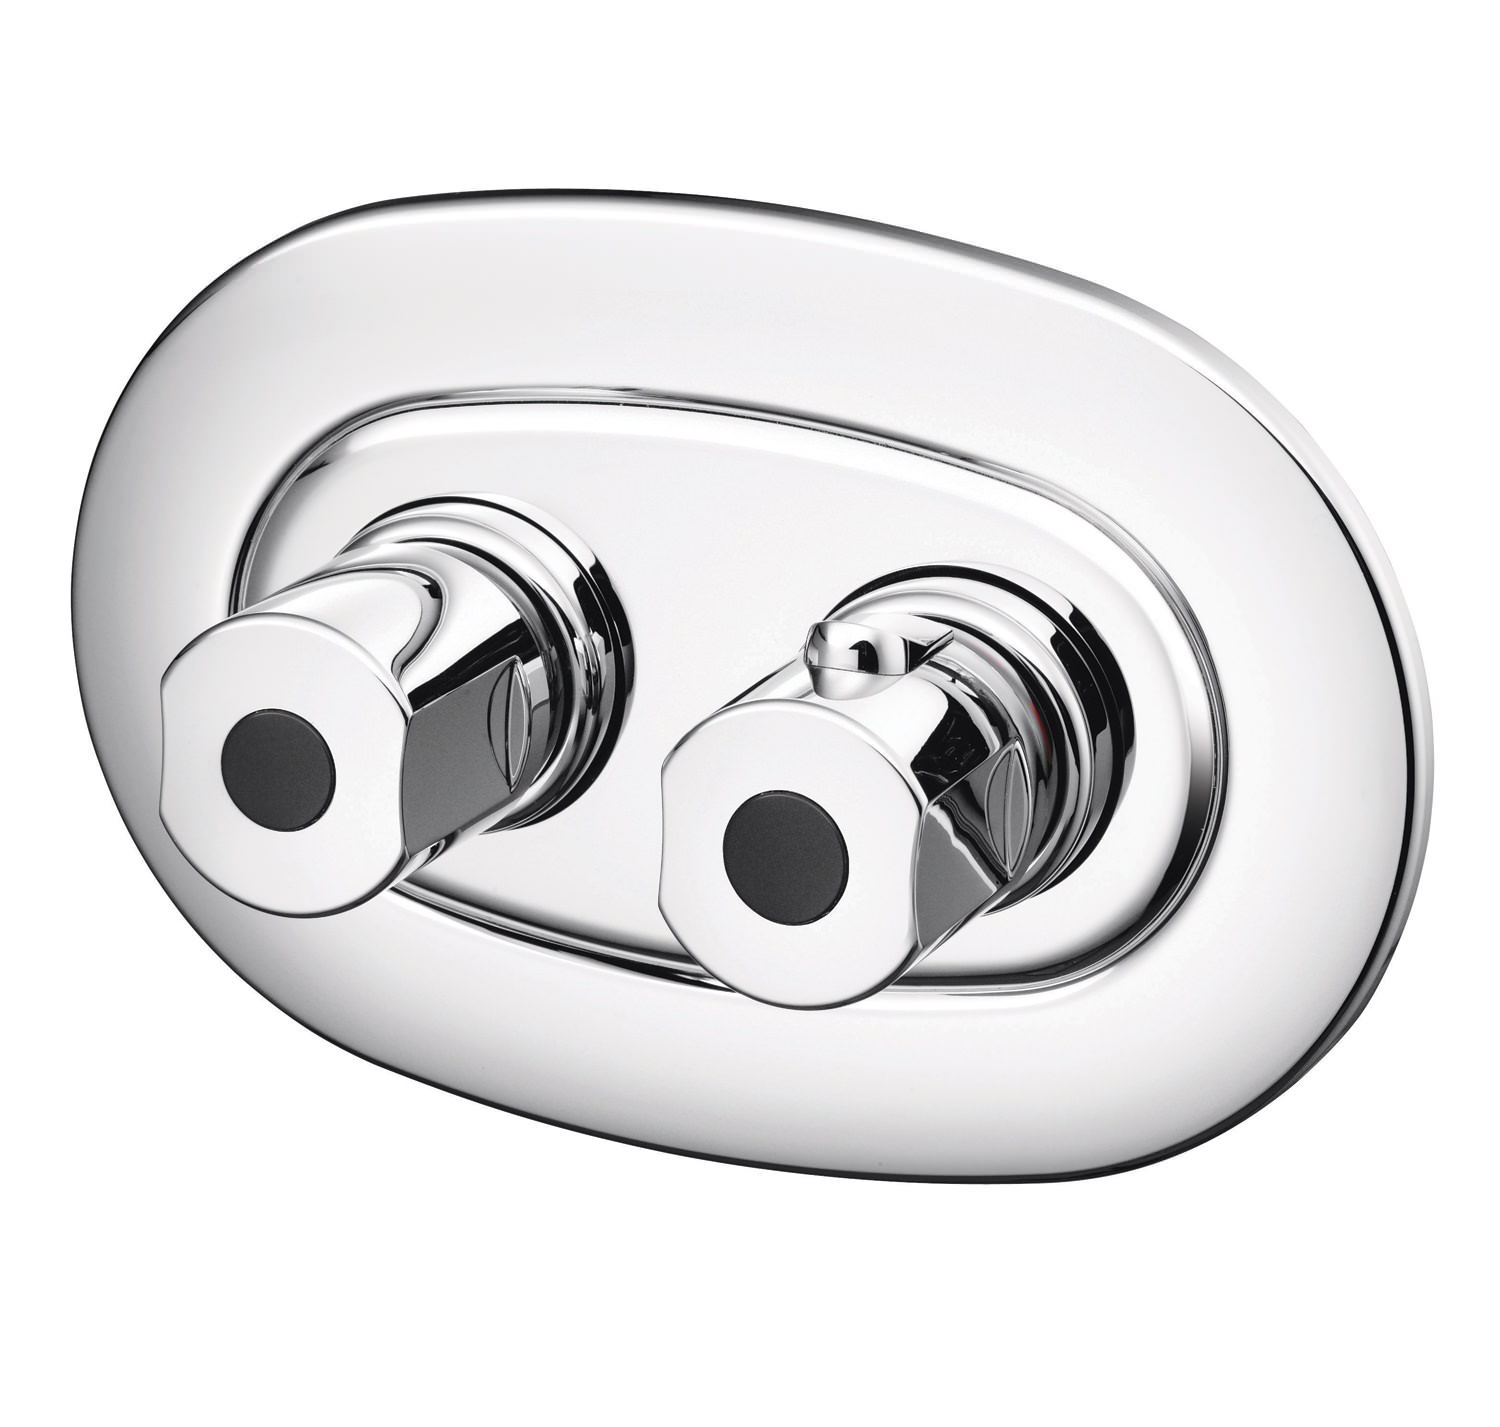 Ideal Standard Trevi Dual Control Thermostatic Shower Mixer Valve